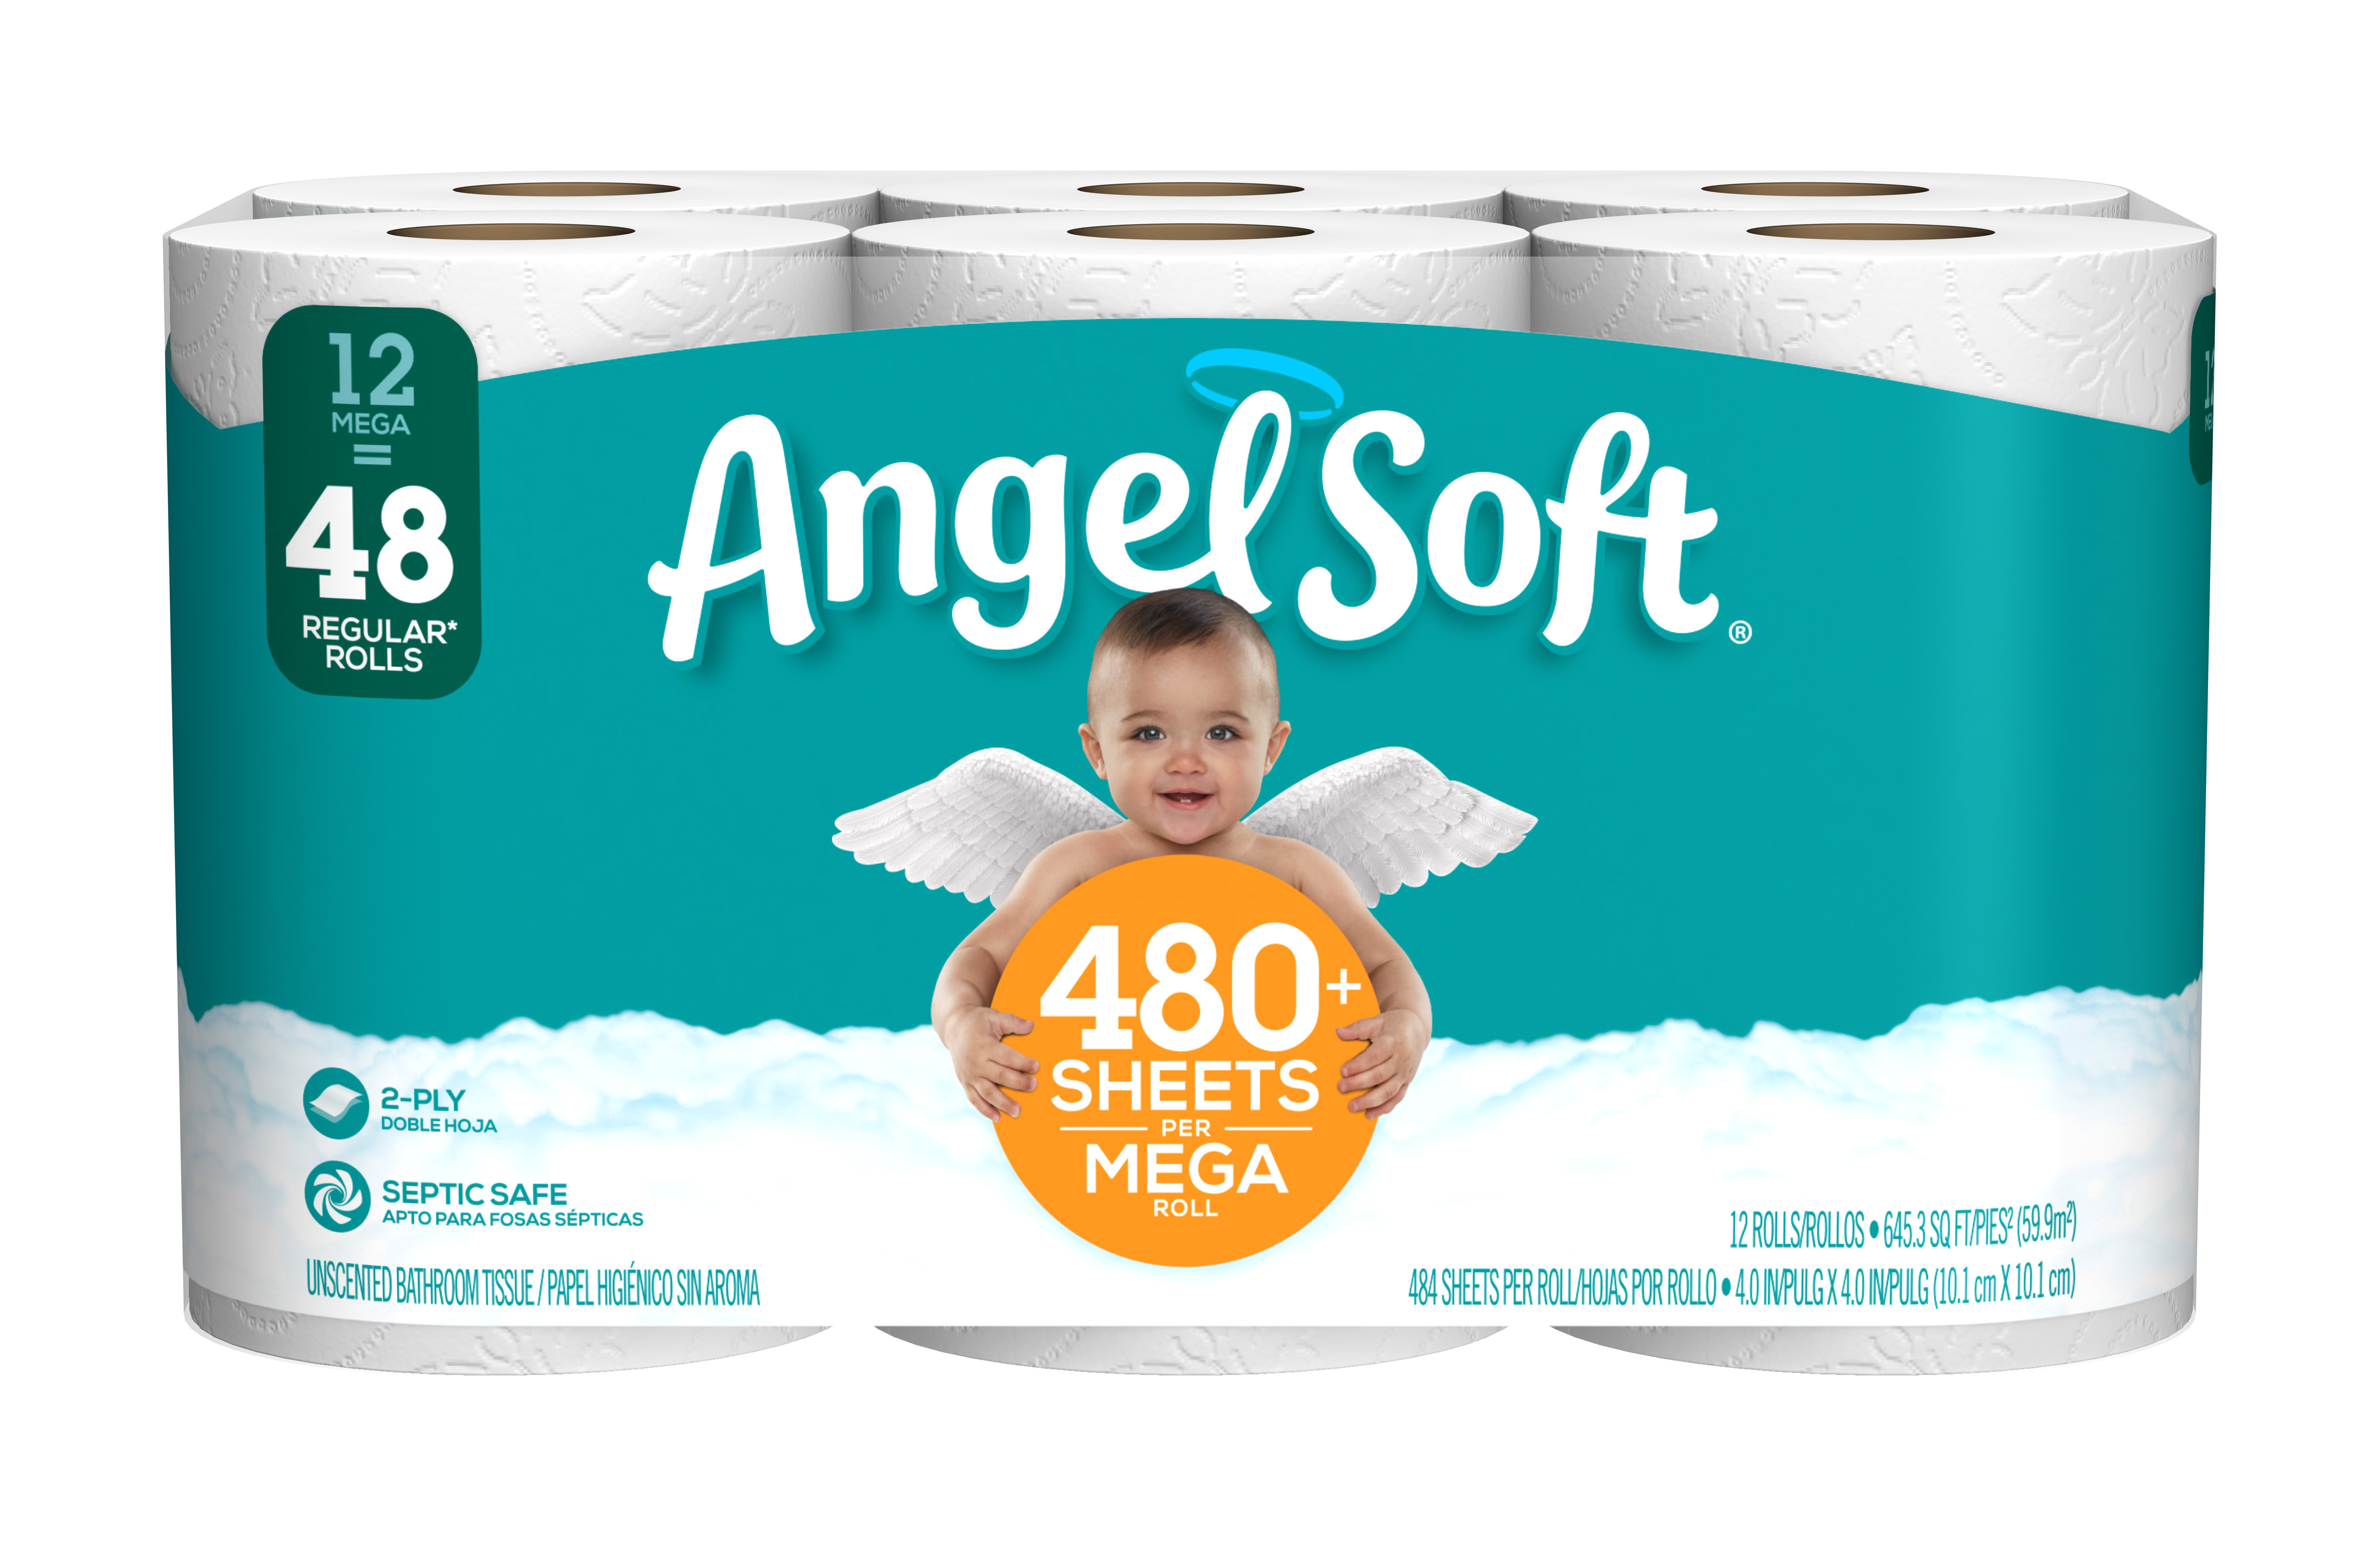 Angel Soft Toilet Paper, 12 Mega Rolls by Georgia Pacific